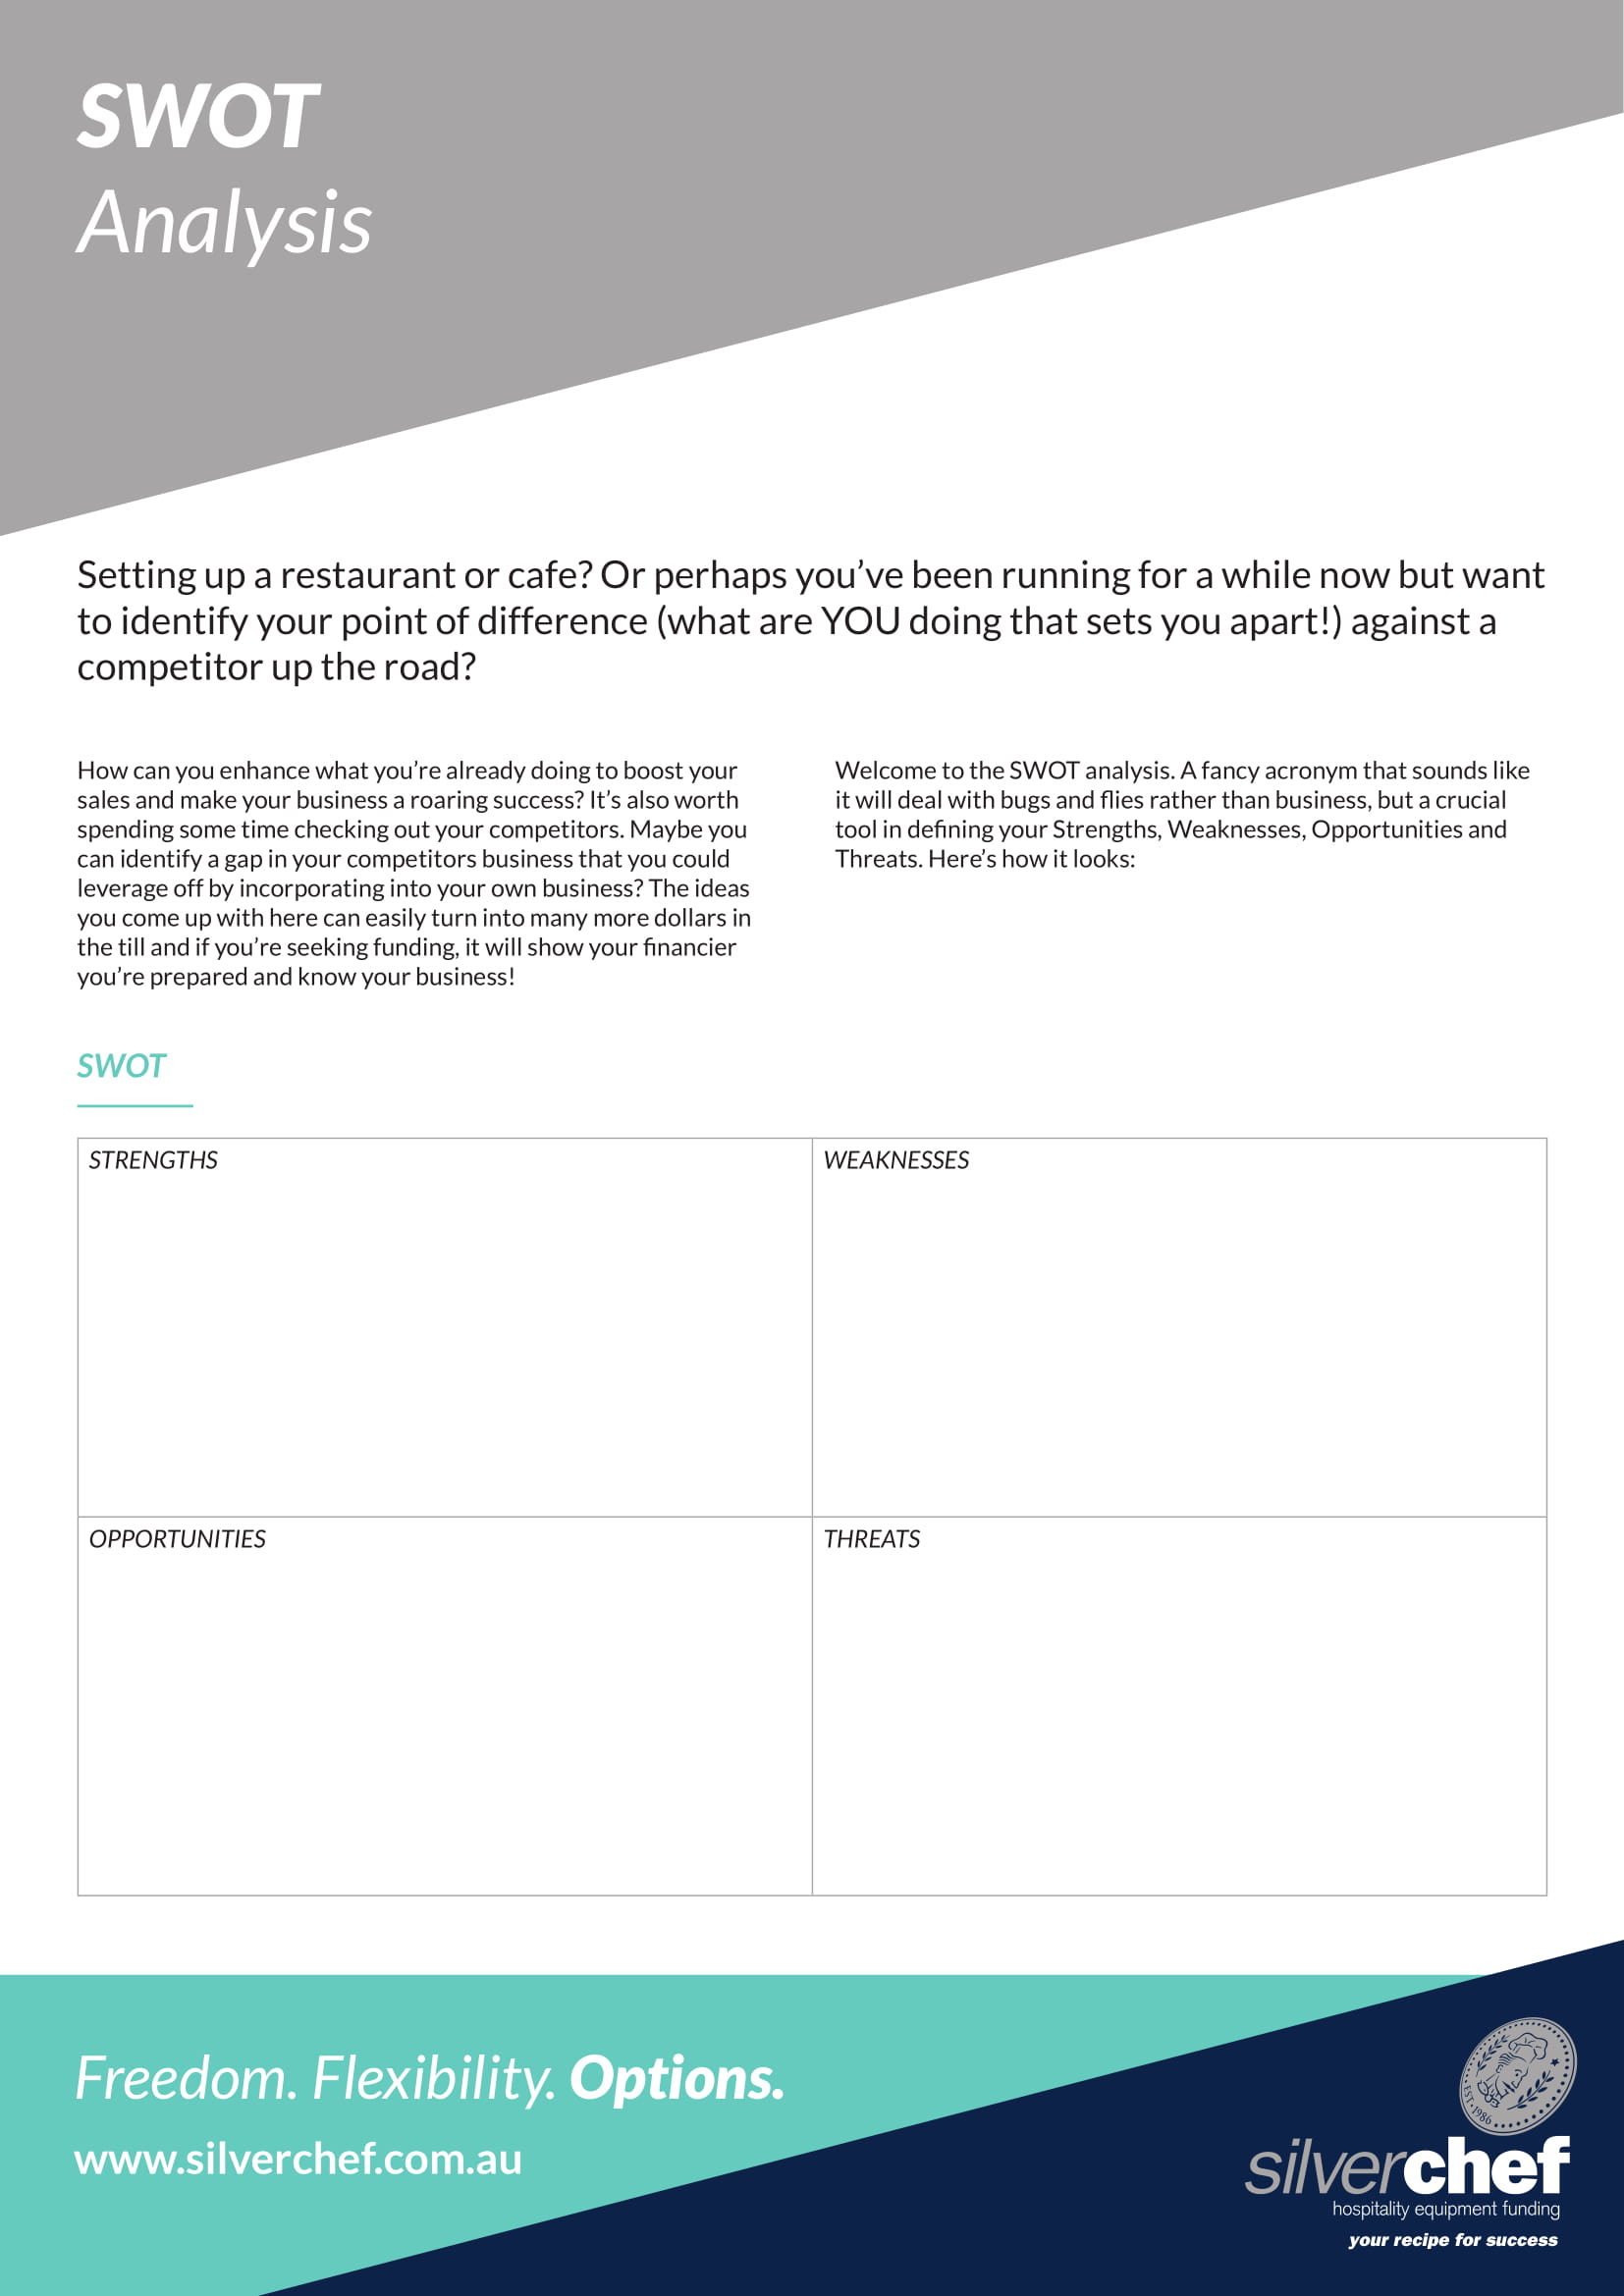 swot analysis for a restaurant or a cafe example 1